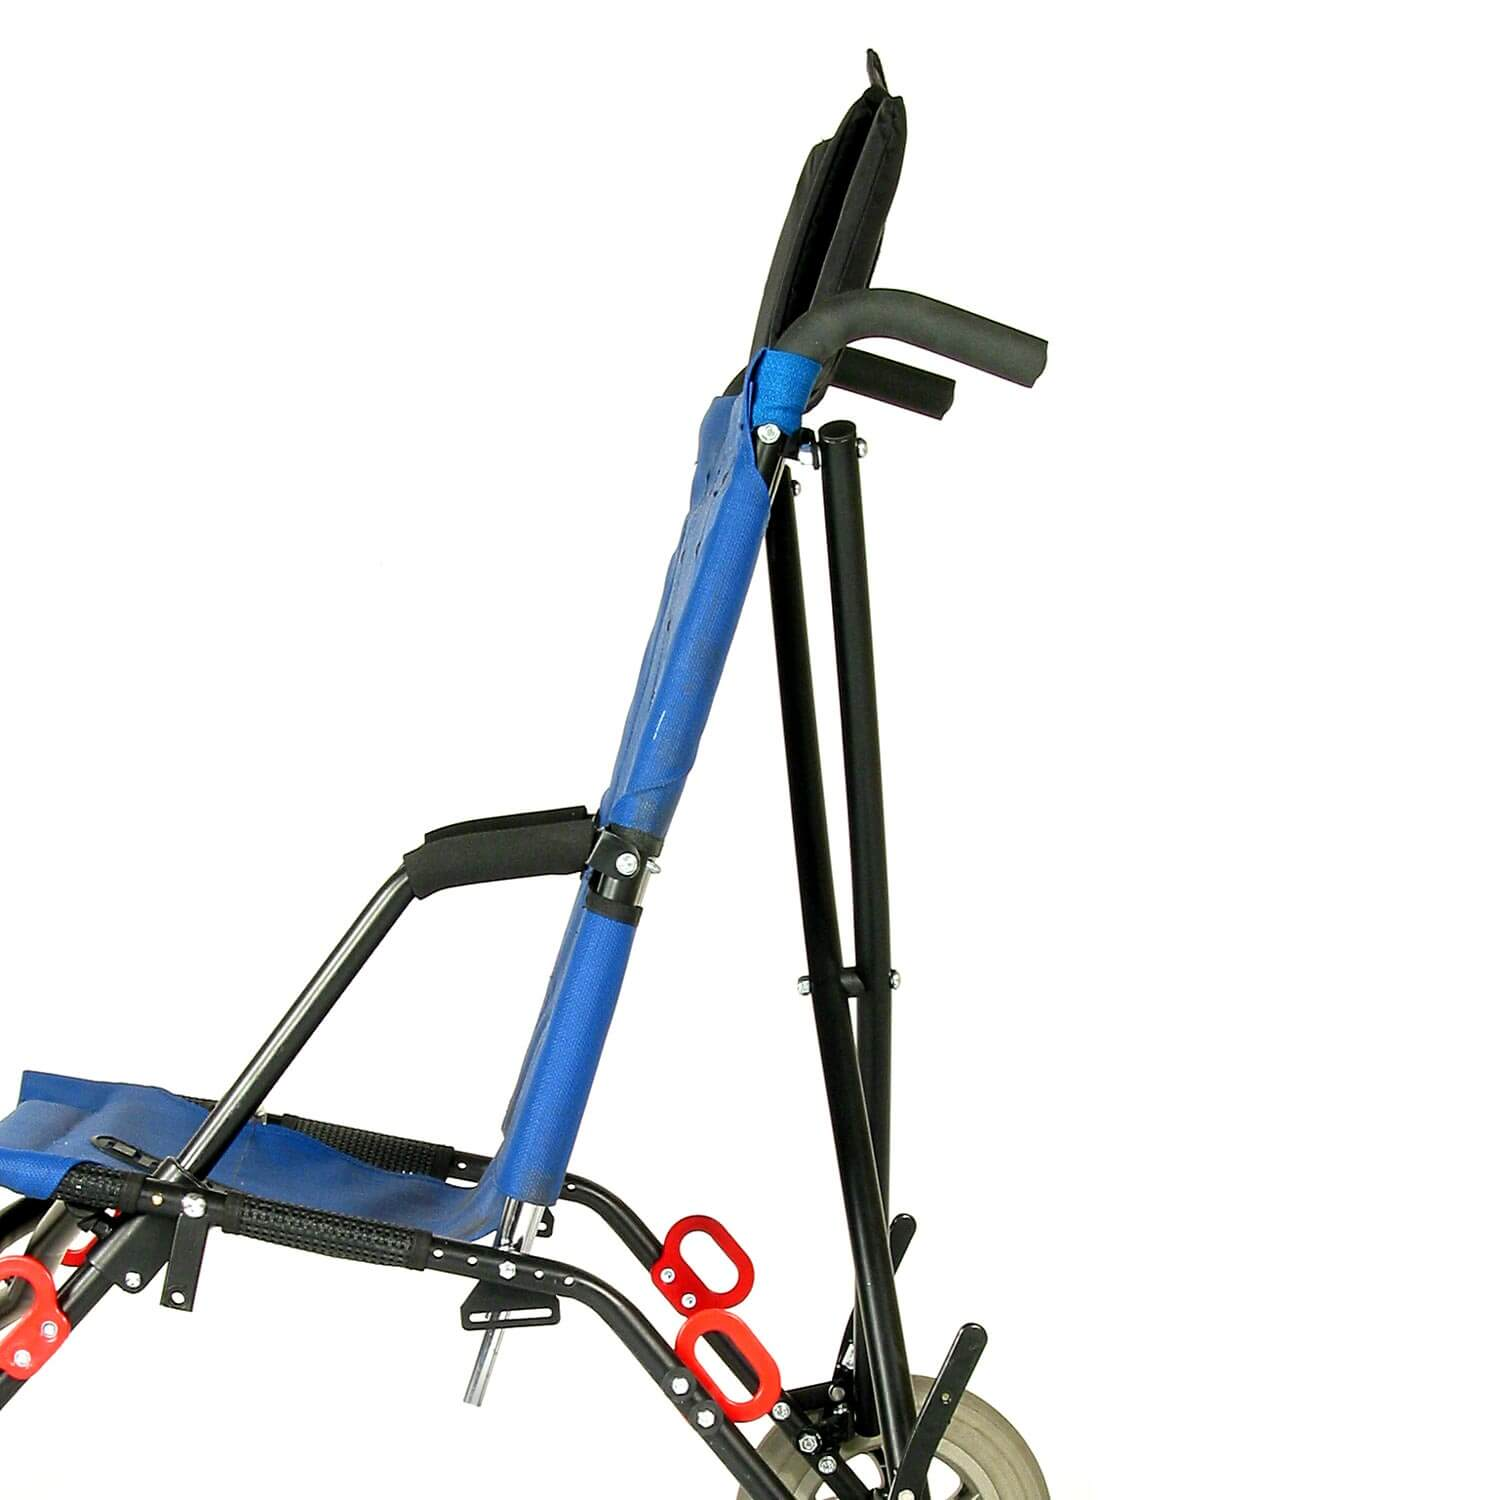 Adjustable Seat and Back Angles